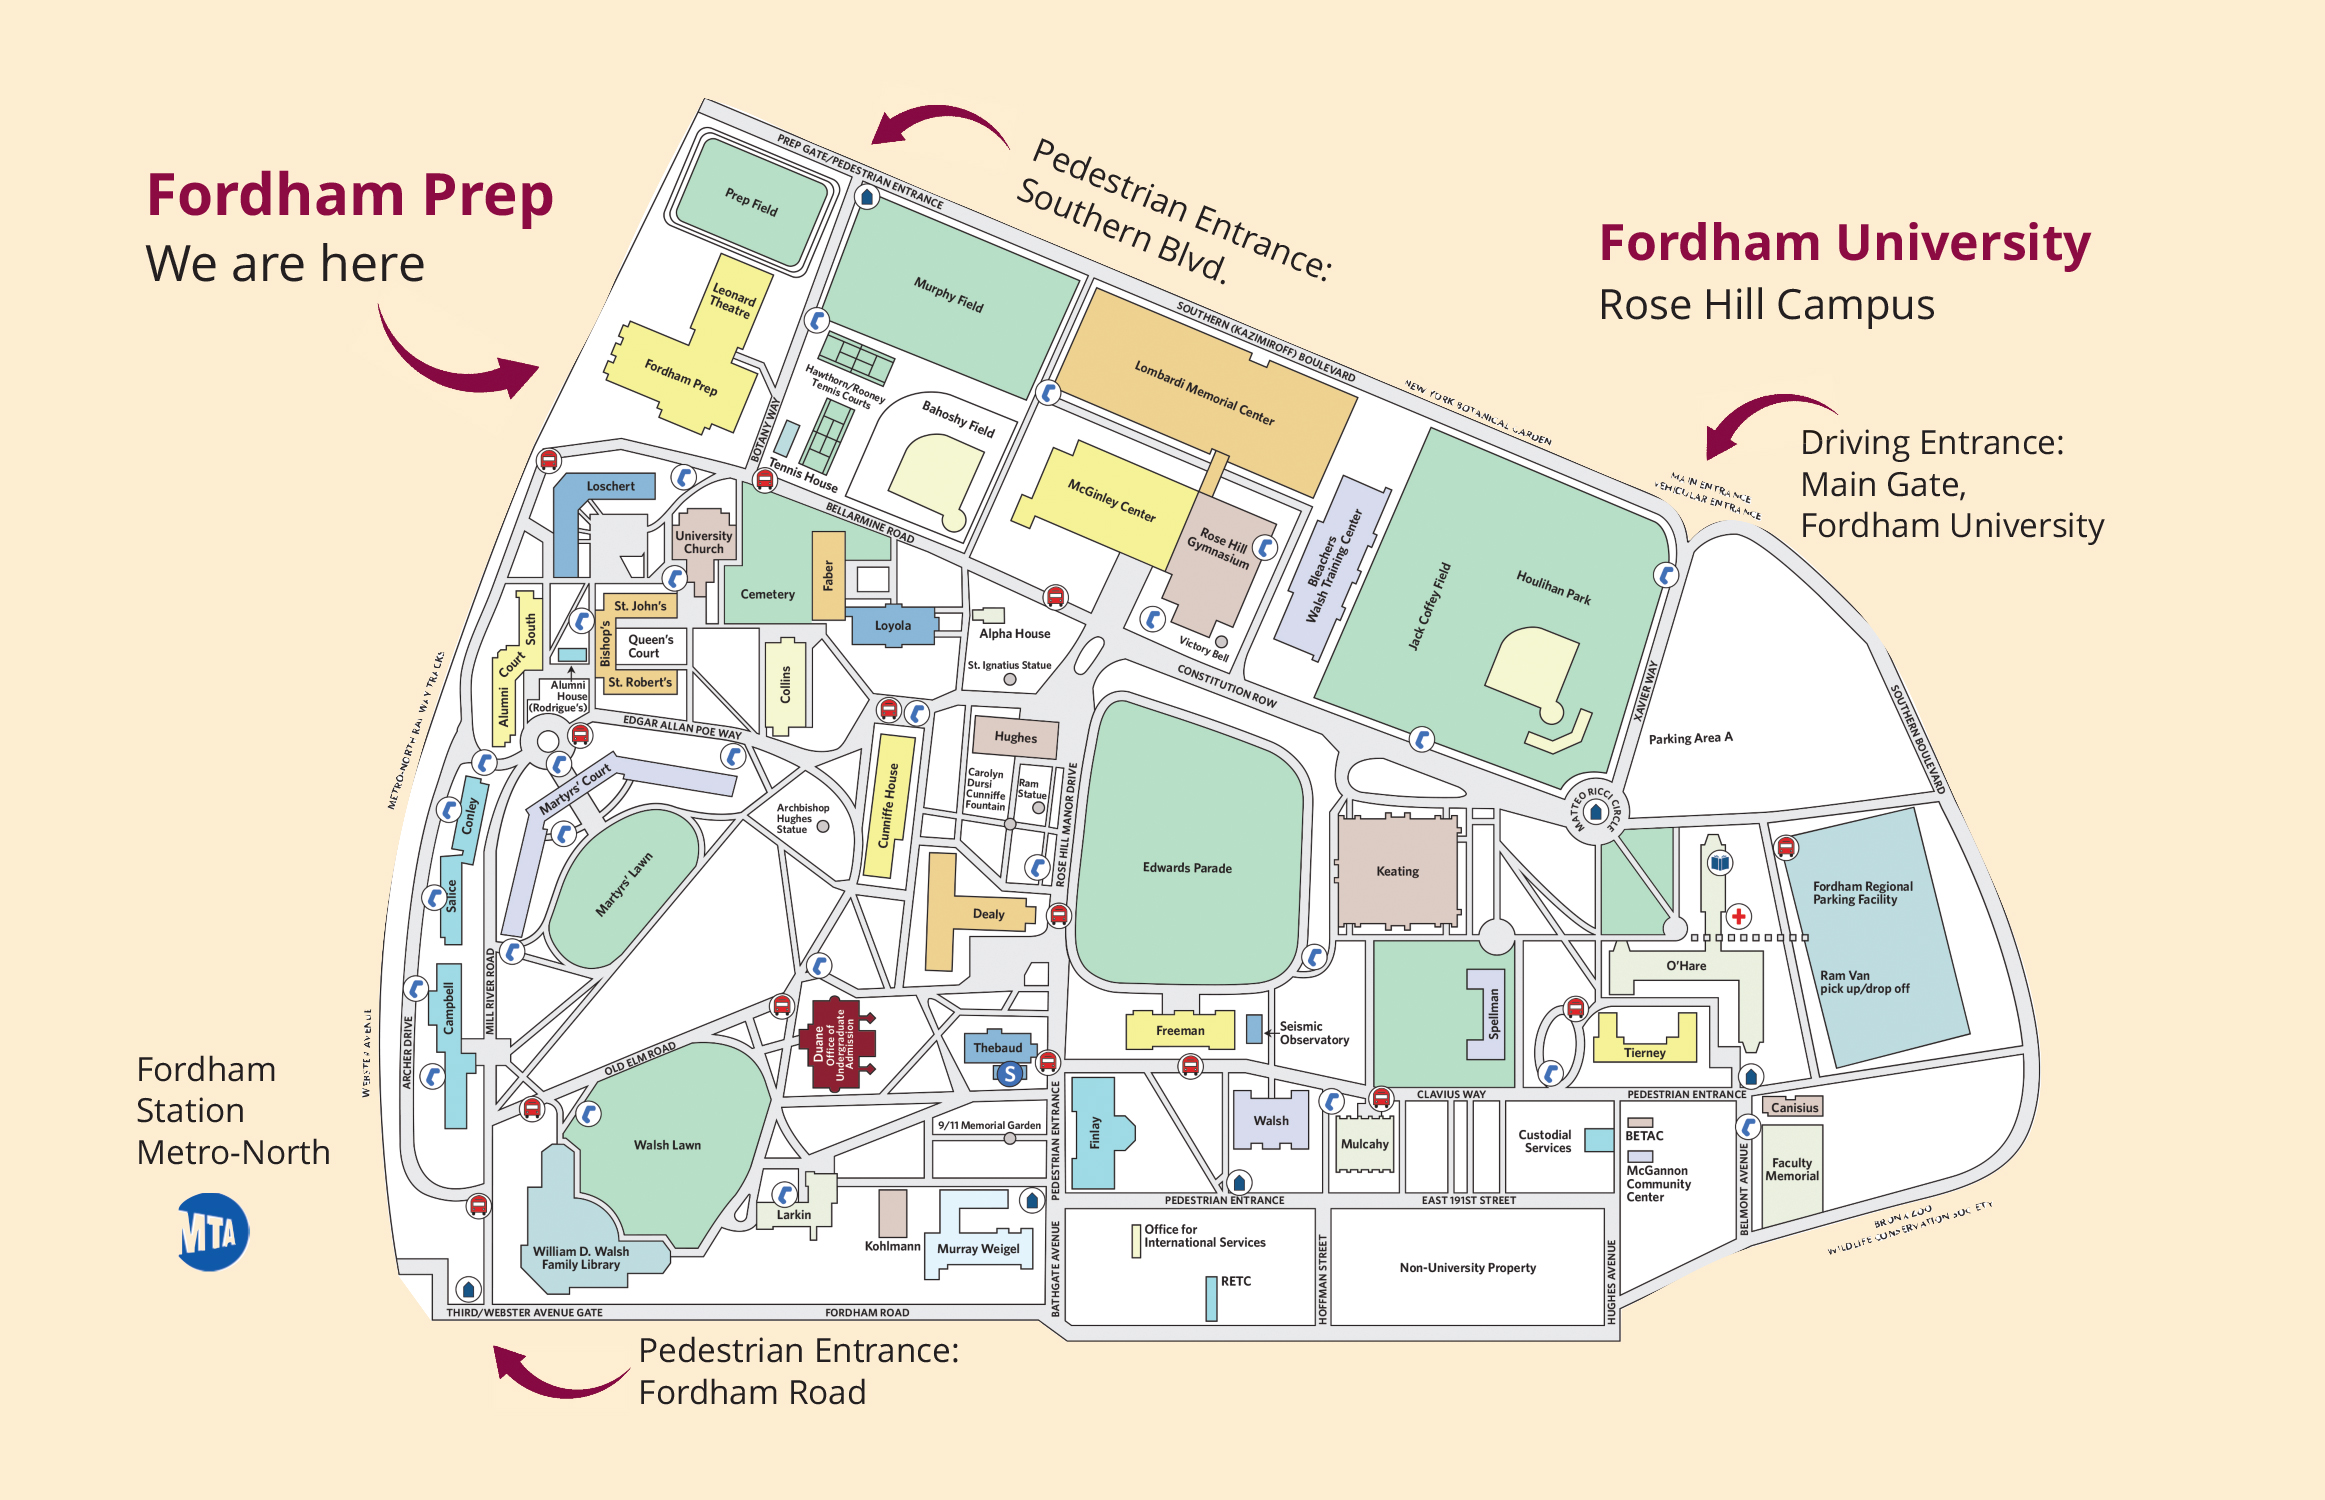 For 175 Years, Fordham Prep Has Been Located On The Historic Rose Hill  Campus In The Bronx Alongside Fordham University. You Can Reach Fordham  Prep Both By ...